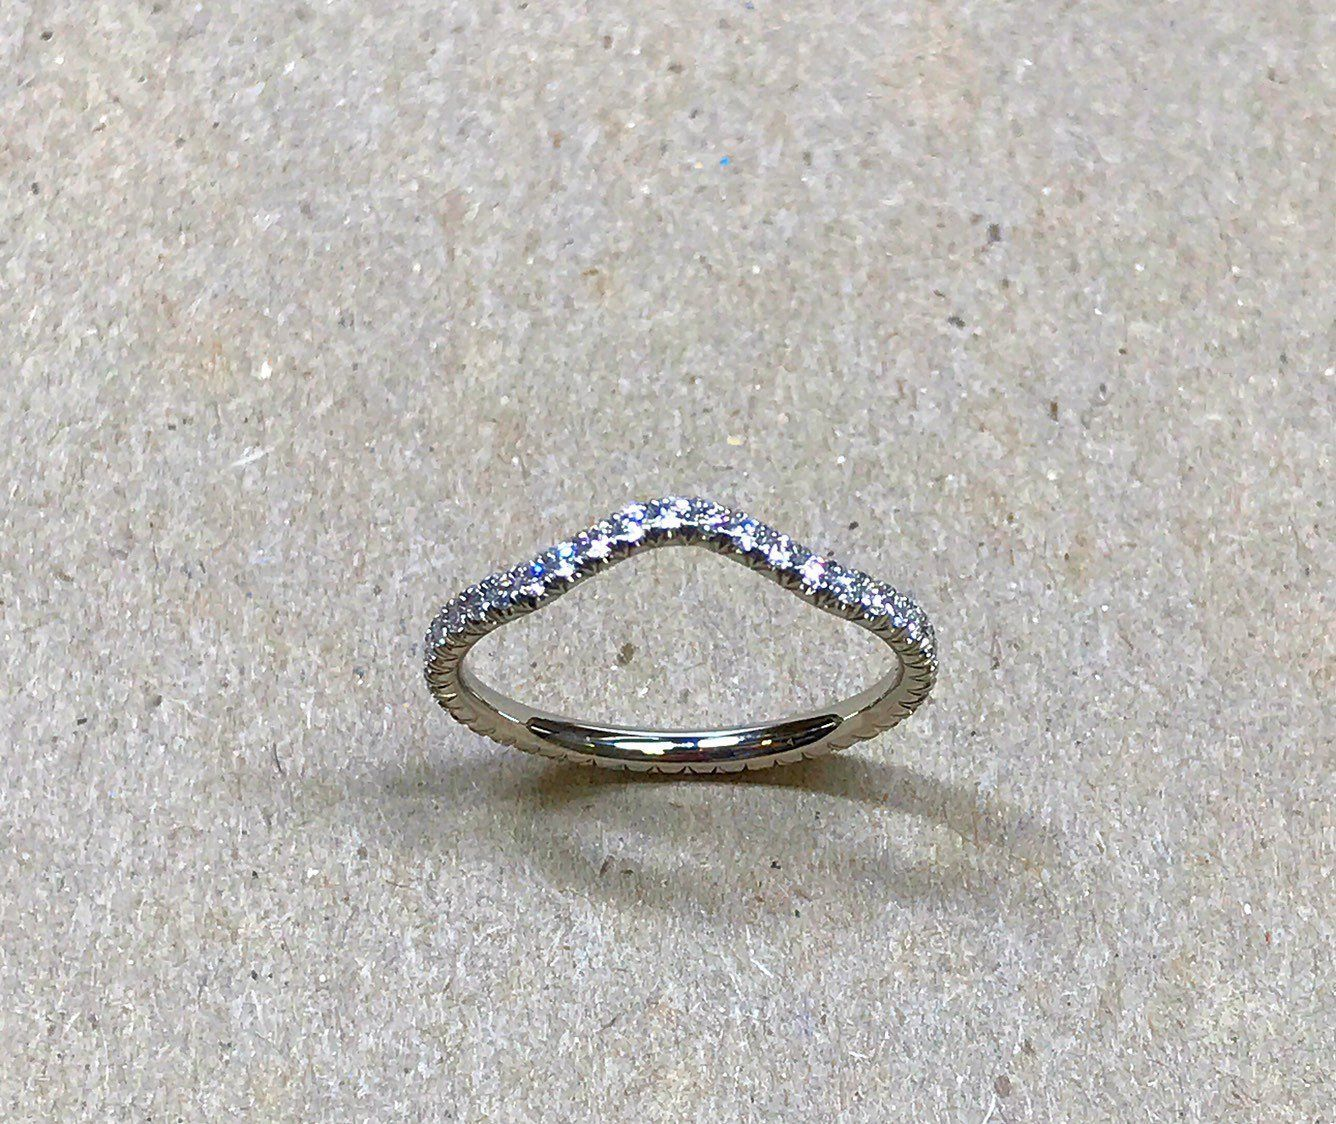 Handmade Platinum 950 Curved Band Ring with Pave Diamonds